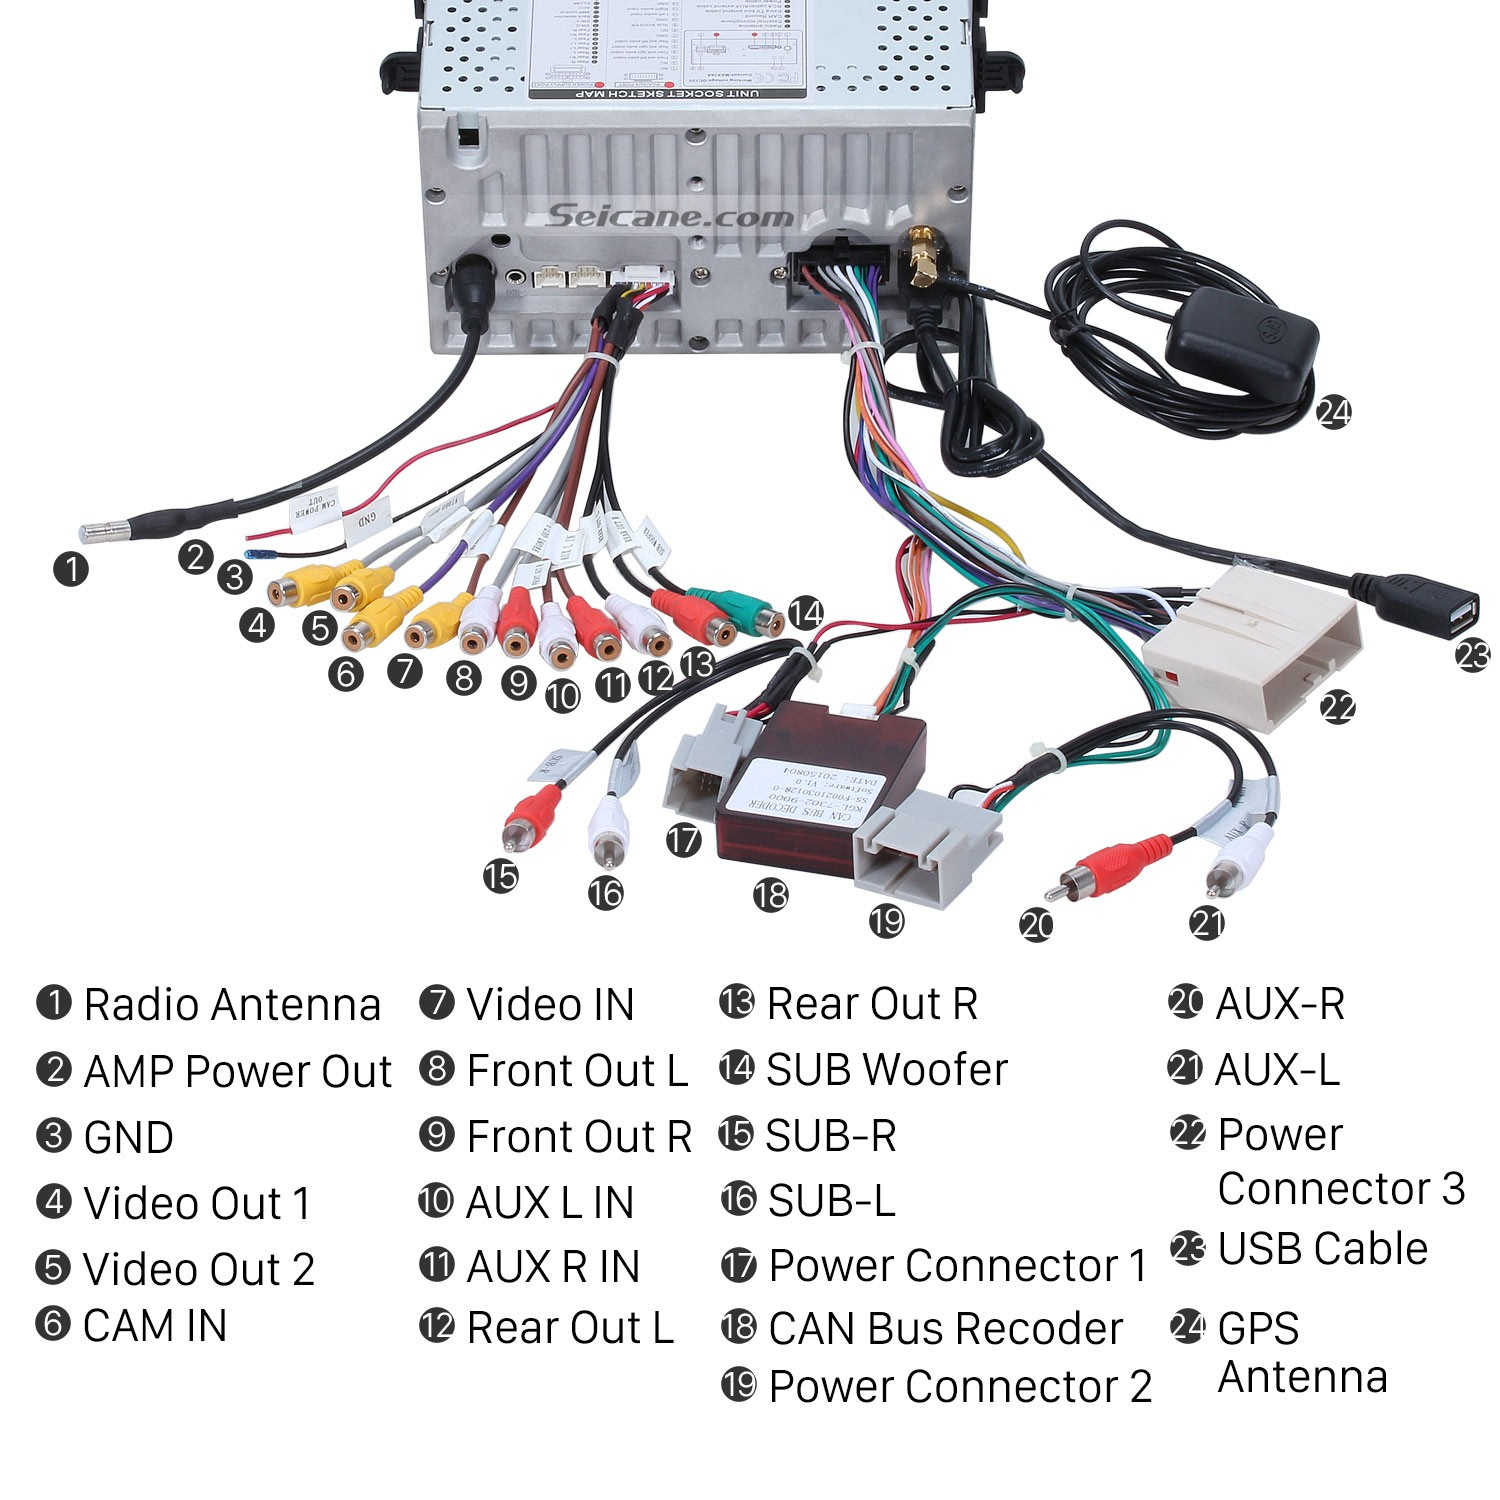 2015 Mustang Usb Wiring Diagram | USB Wiring Diagram